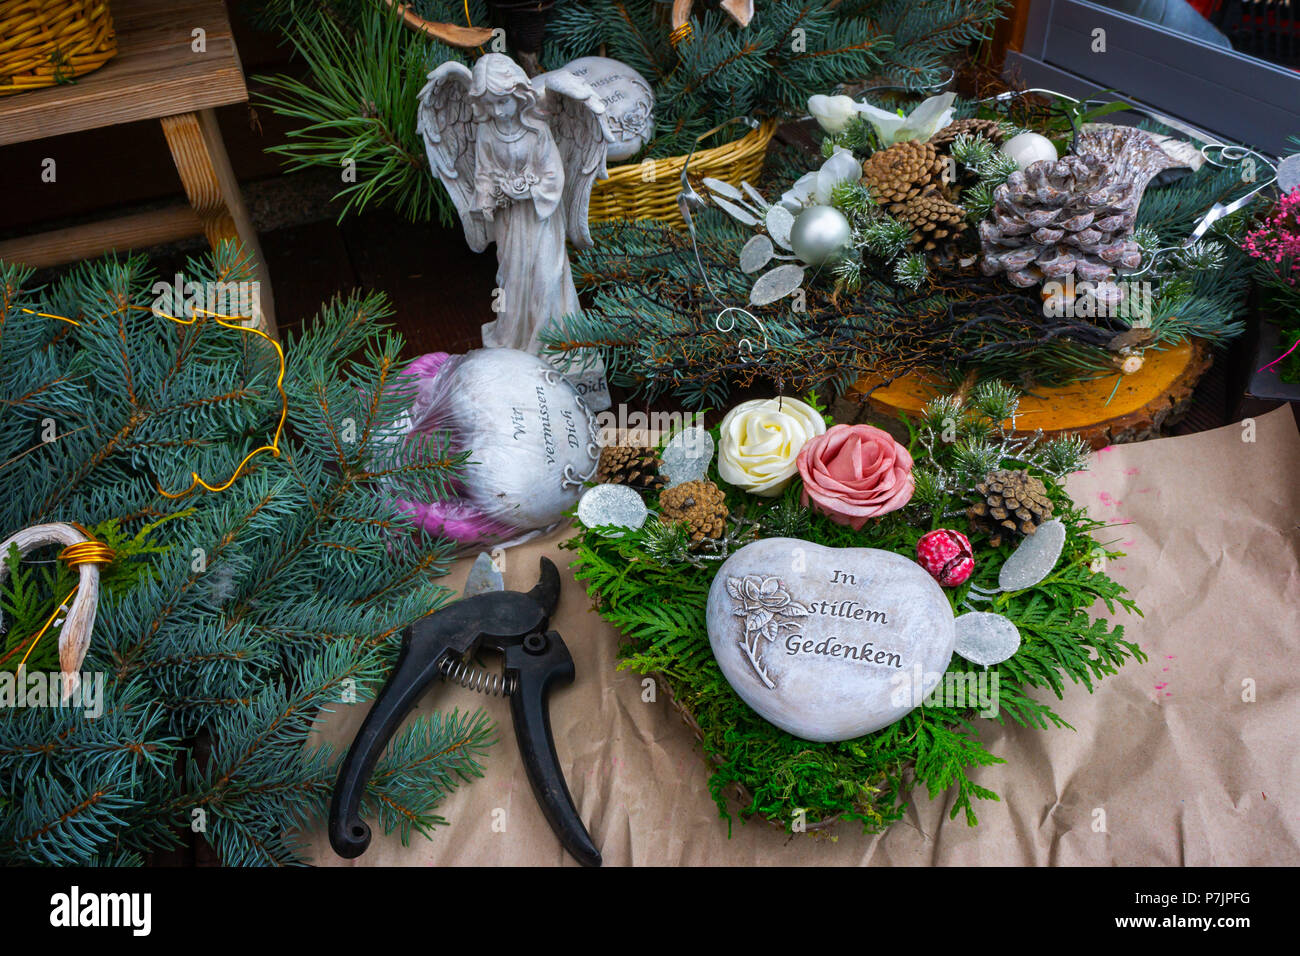 Grave floristry, Grave decoration make yourself, grave arrangement - Stock Image